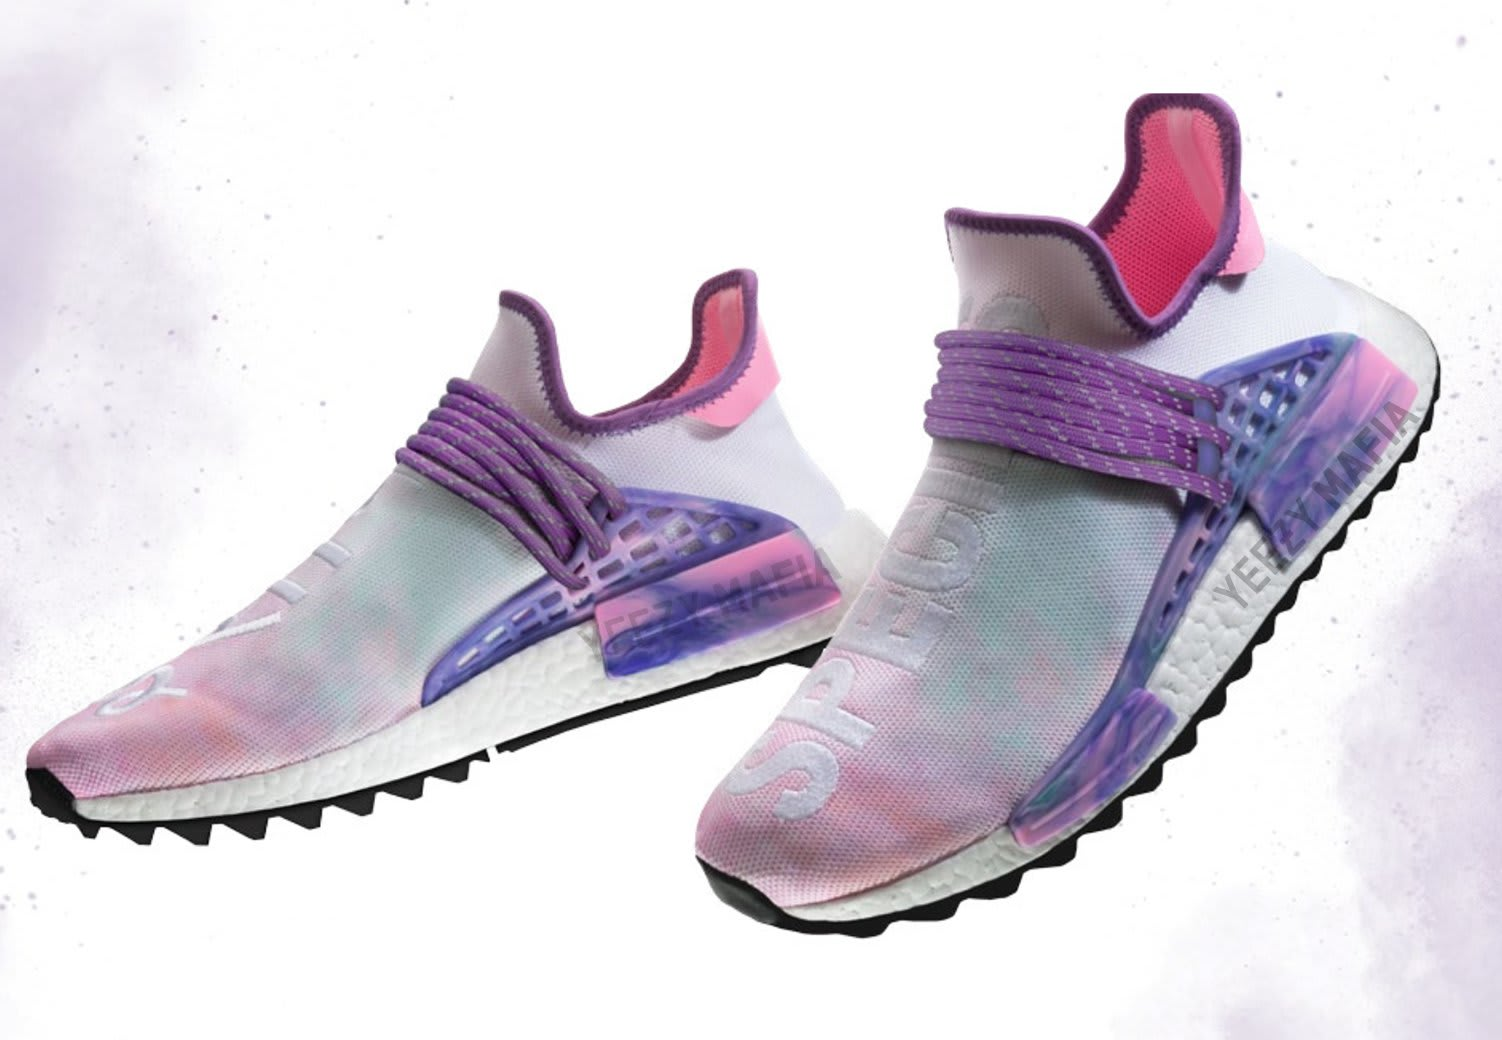 Pharrell adidas NMD Hu Trail Holi Pink Green Purple AC7362